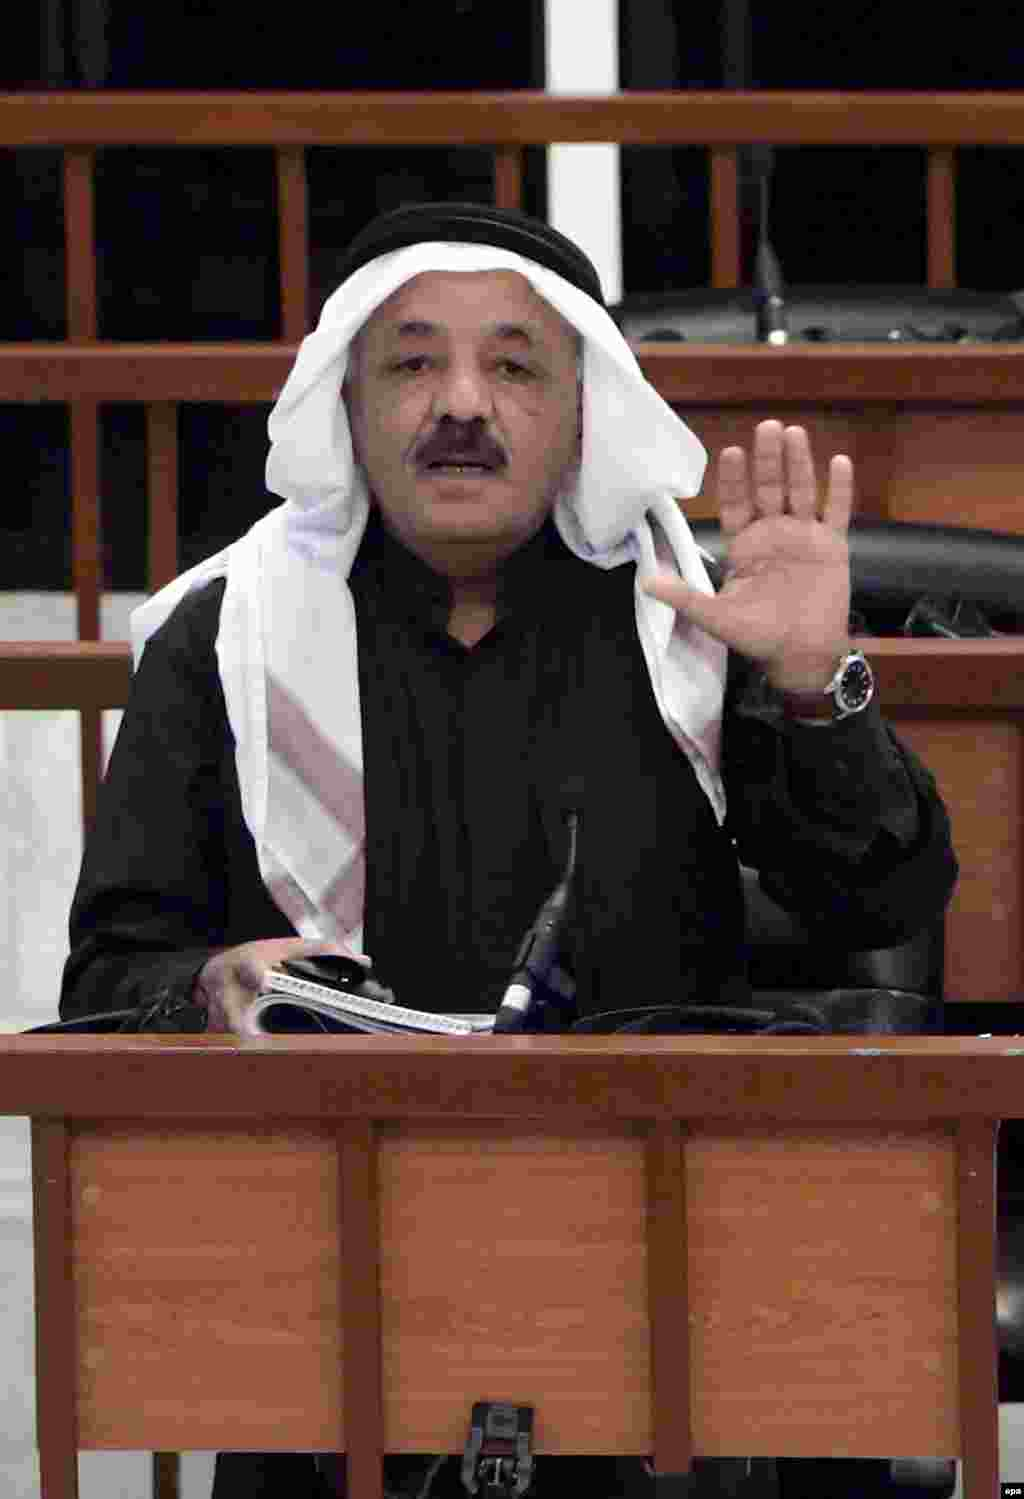 Taha Yassin Ramadan addresses the court as his verdict is being read (epa) - Taha Yassin Ramadan was a vice president of Iraq under Hussein. He was sentenced to life in prison.